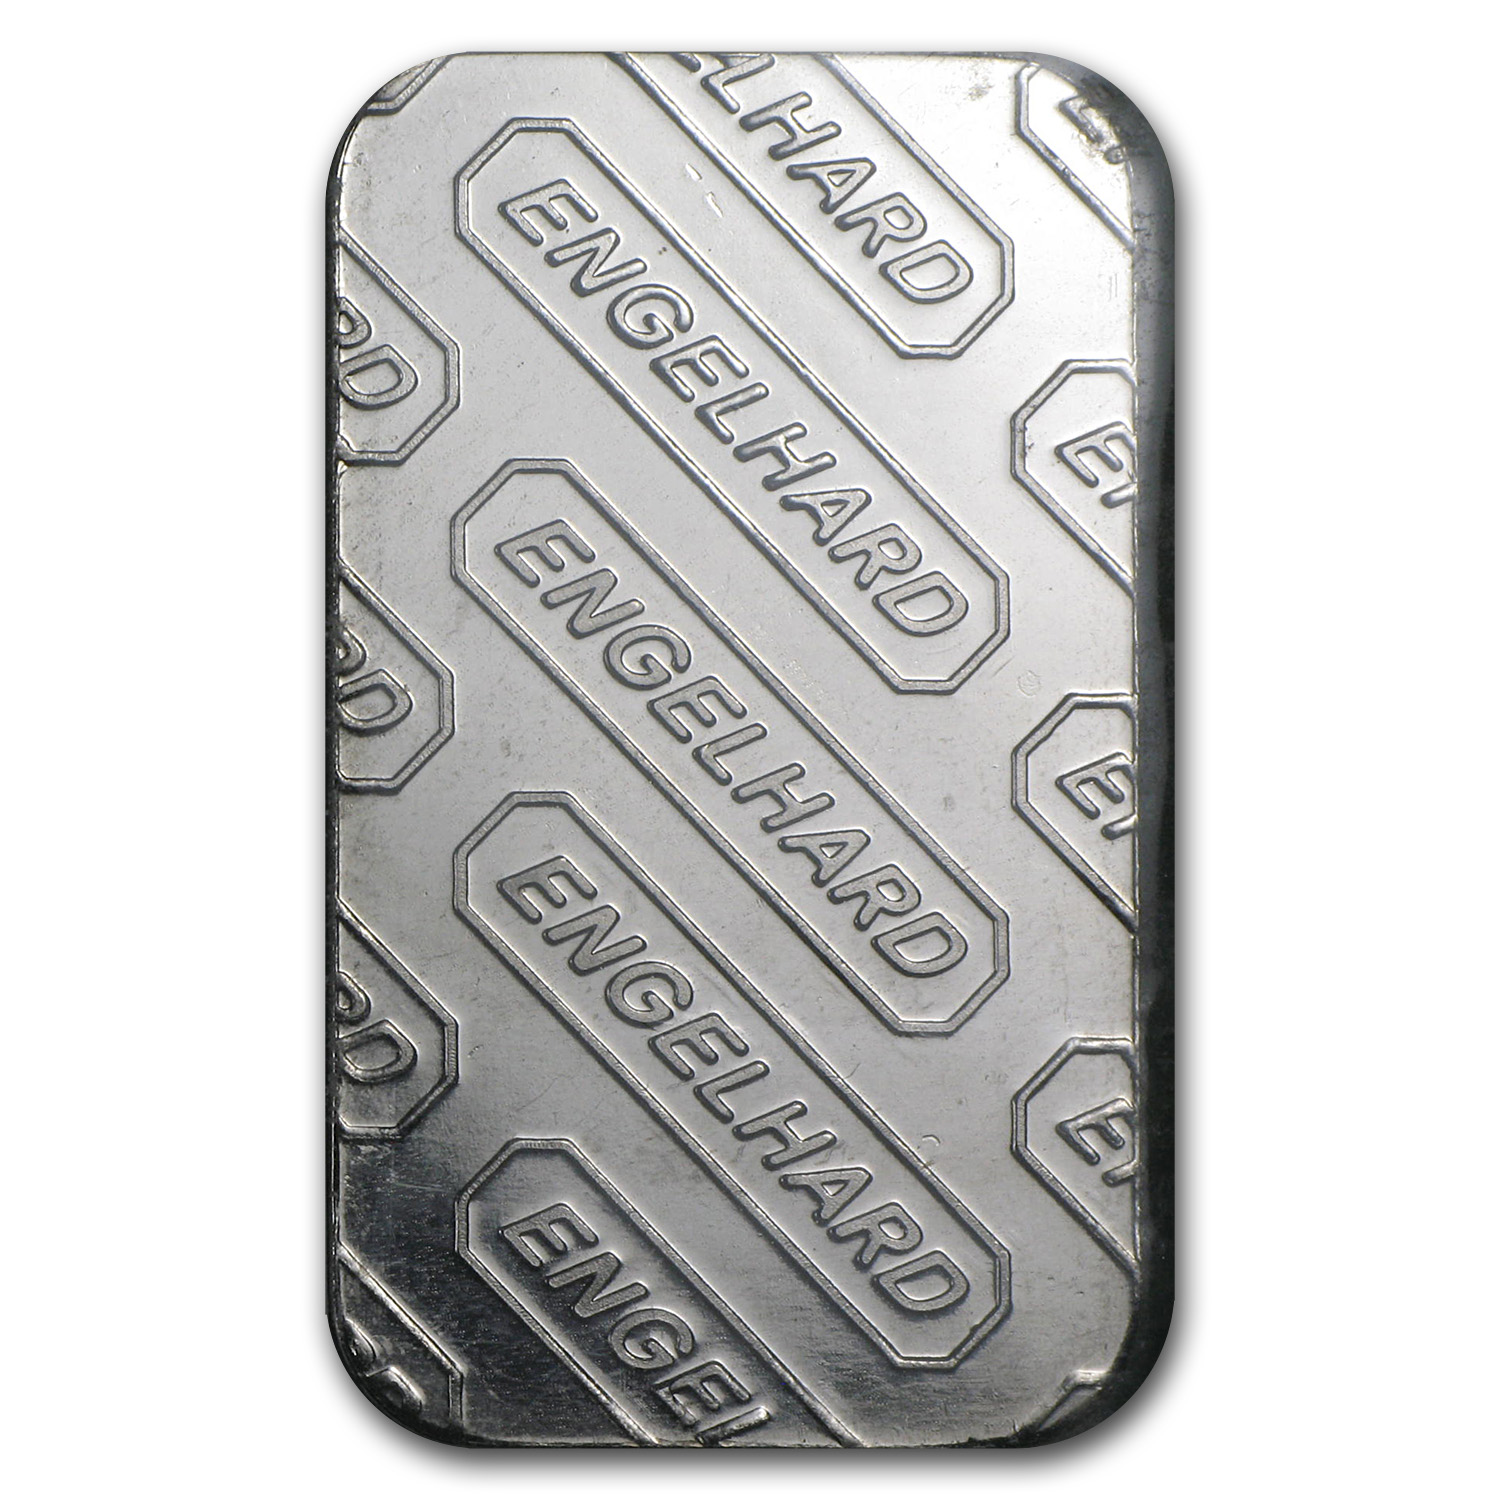 1 oz Engelhard Palladium Bar .999 Fine ('E' Logo, In Assay)